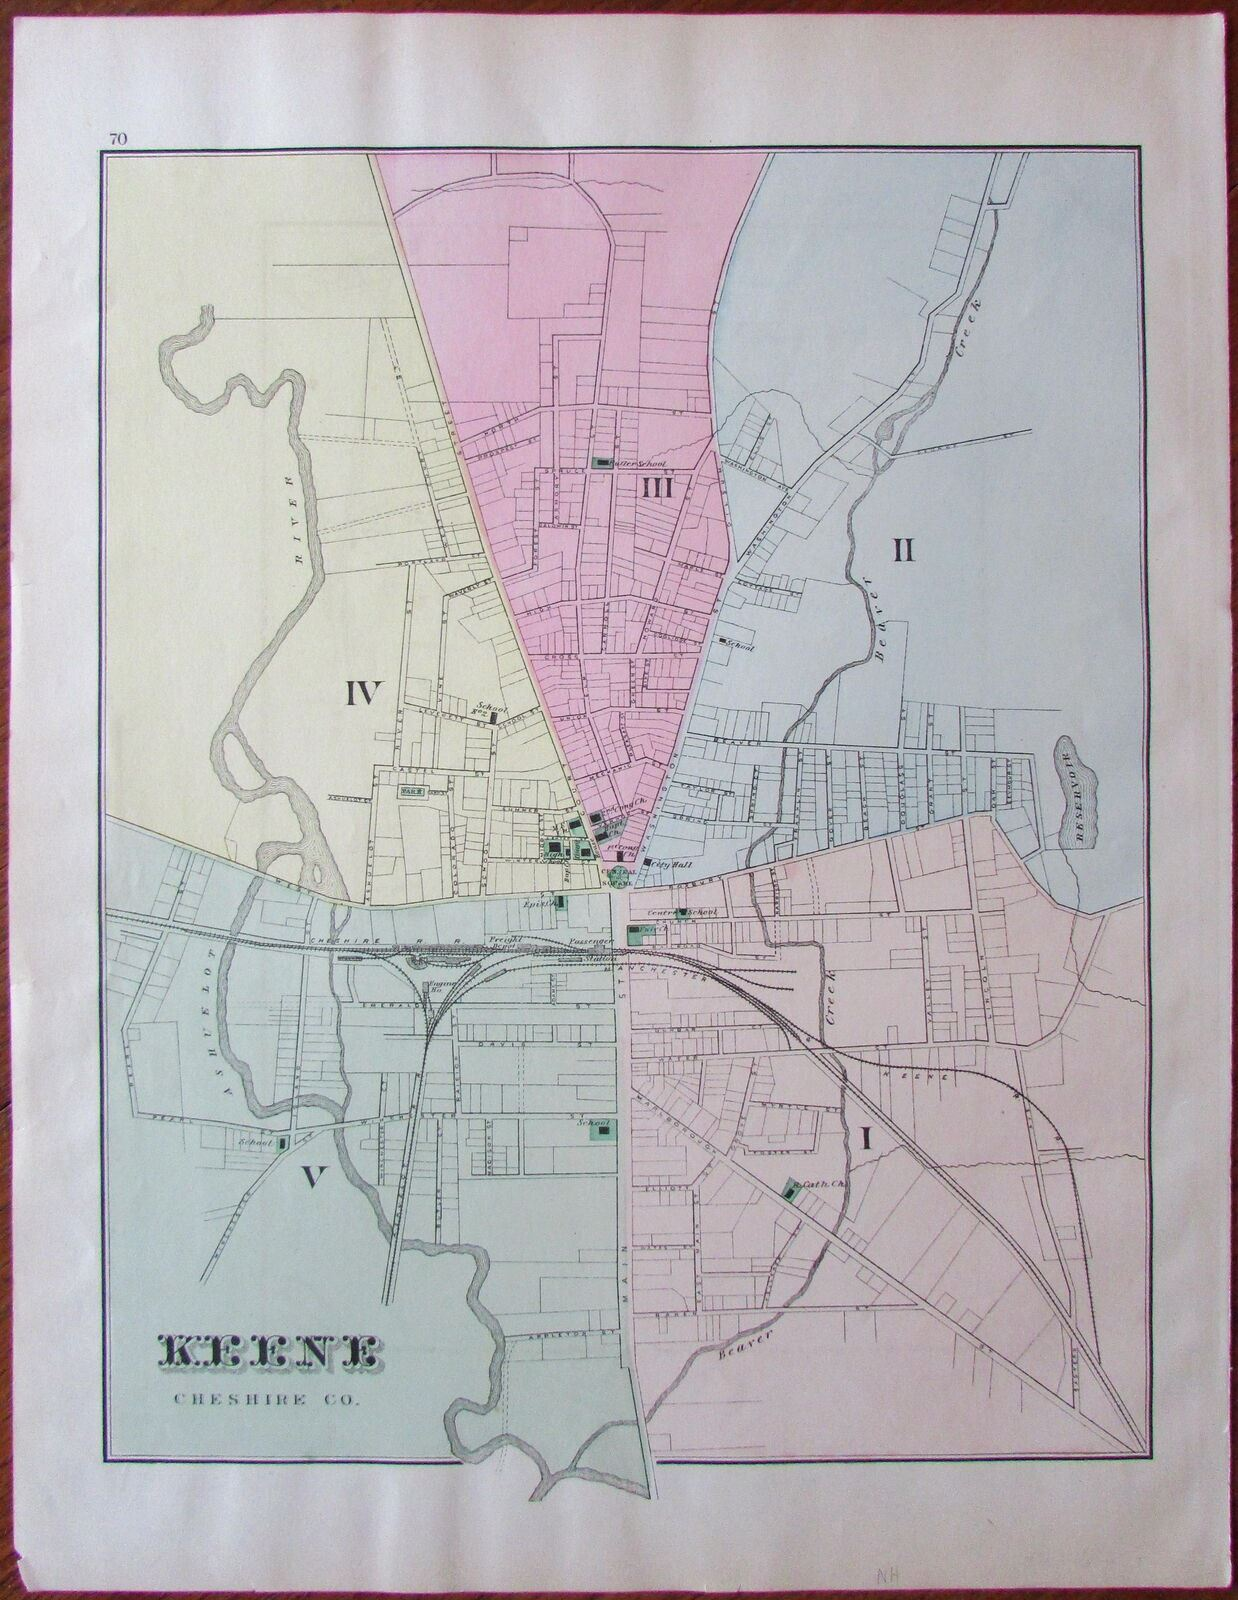 Keene New Hampshire city plan Cheshire County c.1871 old hand ... on methuen nh map, brattleboro nh map, peabody nh map, mansfield nh map, manchester nh on map, cheshire nh map, walpole nh map, plymouth nh map, westminster nh map, franklin nh map, jacksonville nh map, newburyport nh map, monadnock mountain nh map, connecticut new england map, lancaster nh map, nh state road map, keene new hampshire, buffalo nh map, peterborough nh map, hooksett nh map,